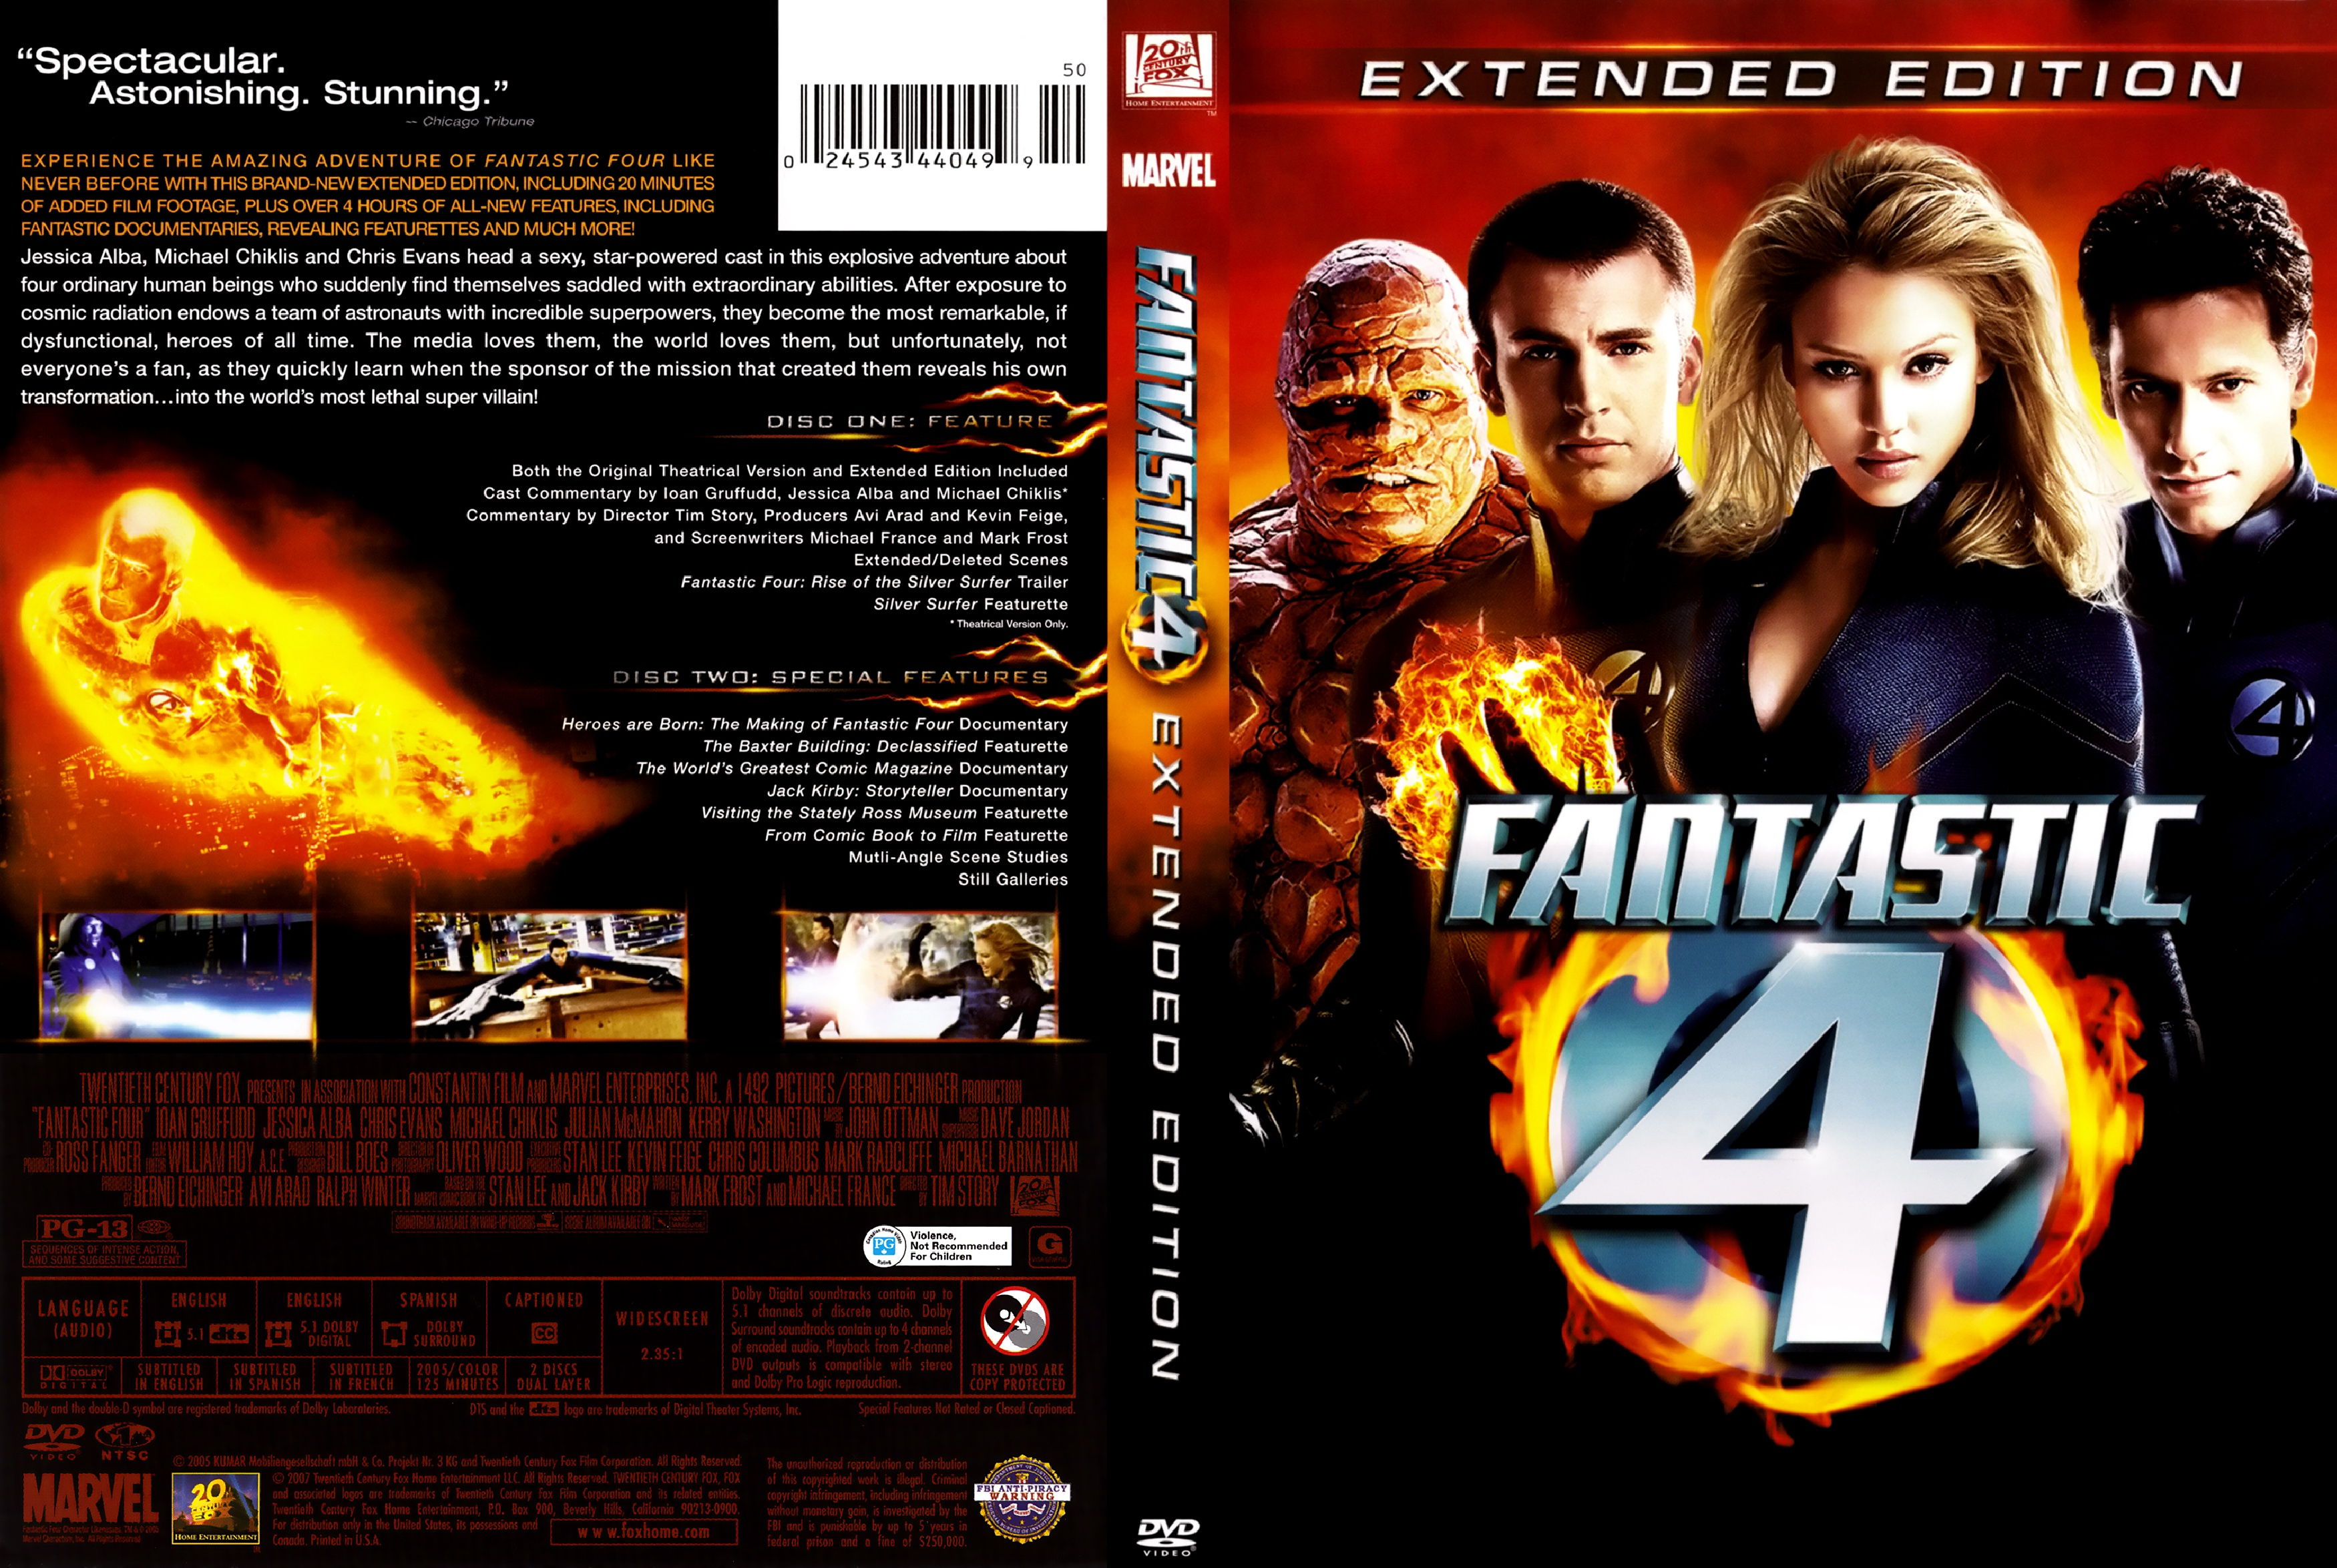 fantastic-four--extended-edition--r1-front-cover-dvd-free.jpg